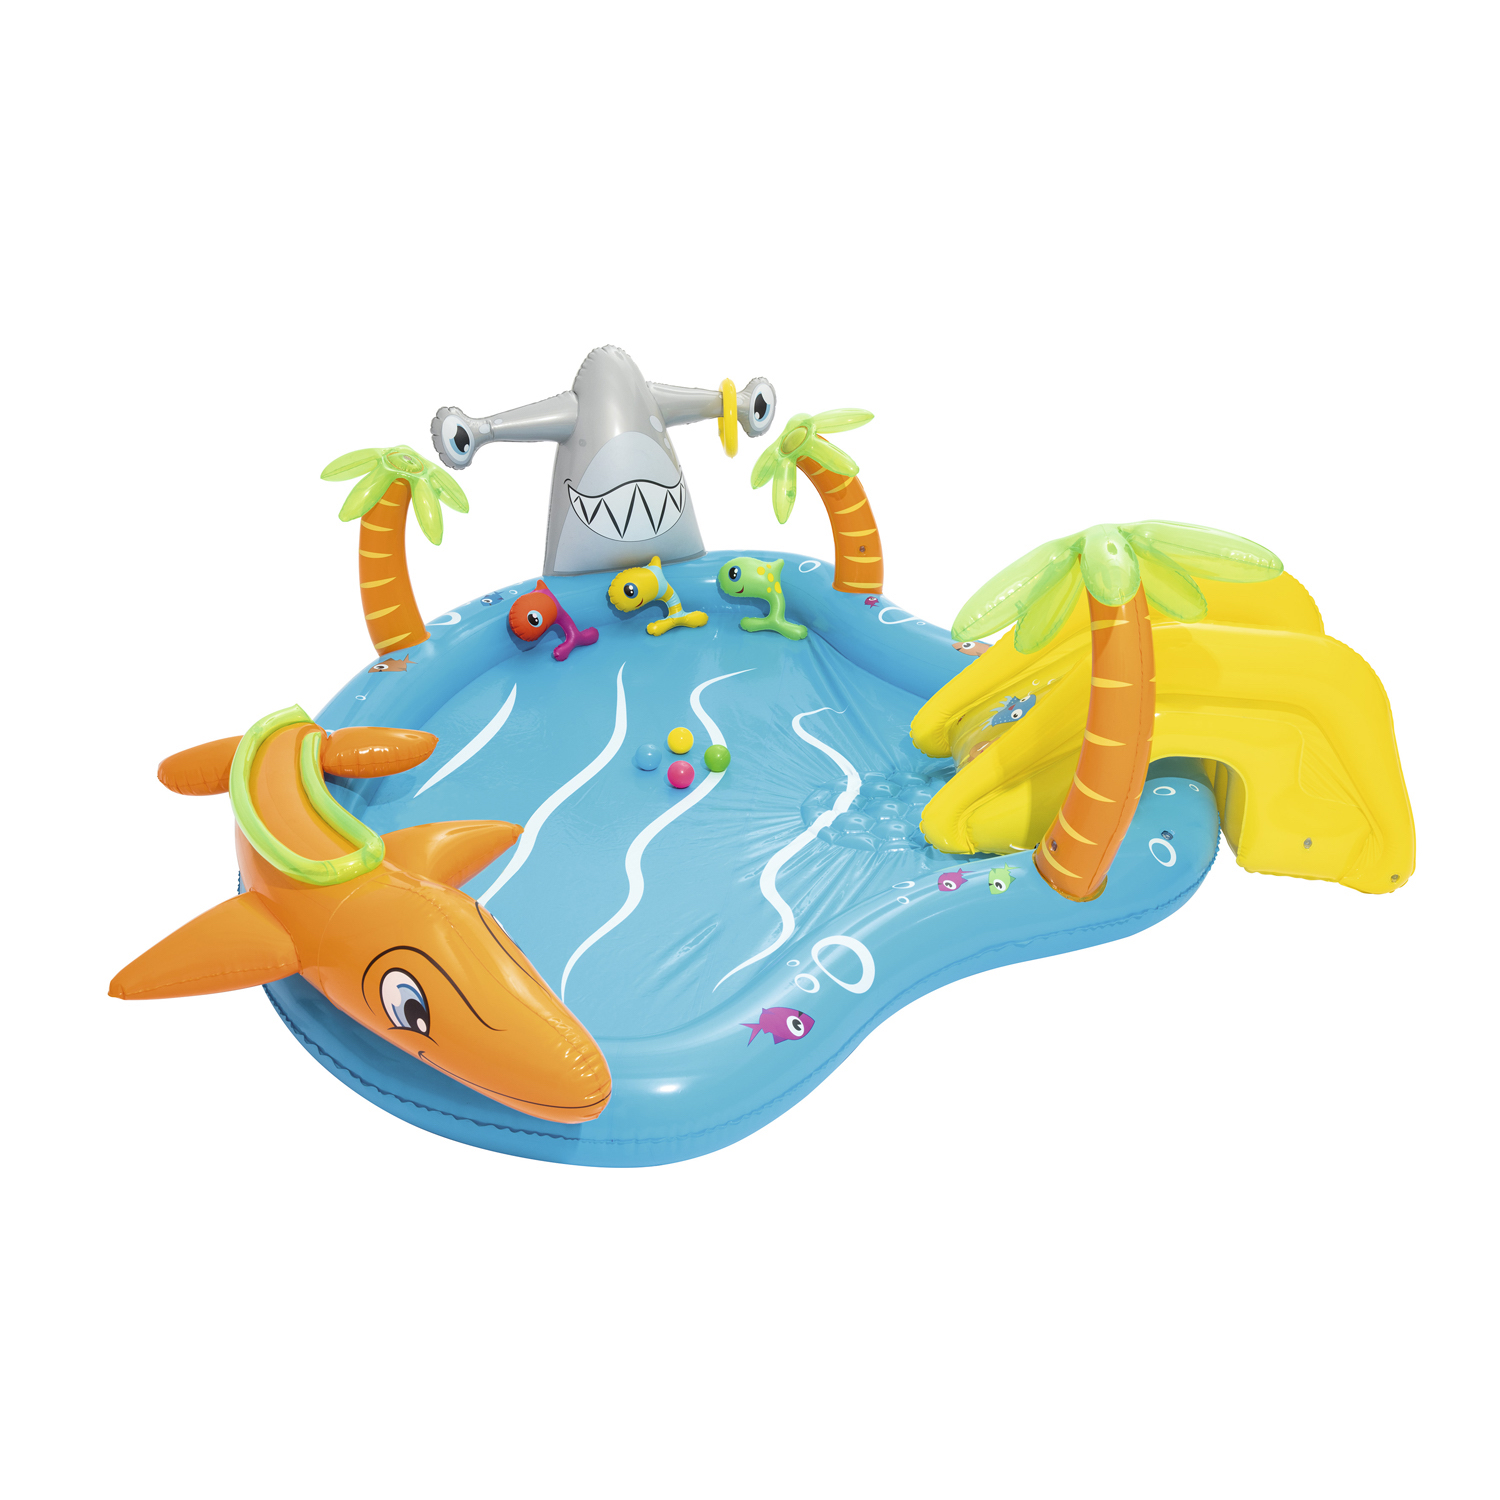 H2OGO! Sea Life Inflatable Play Center.jpg